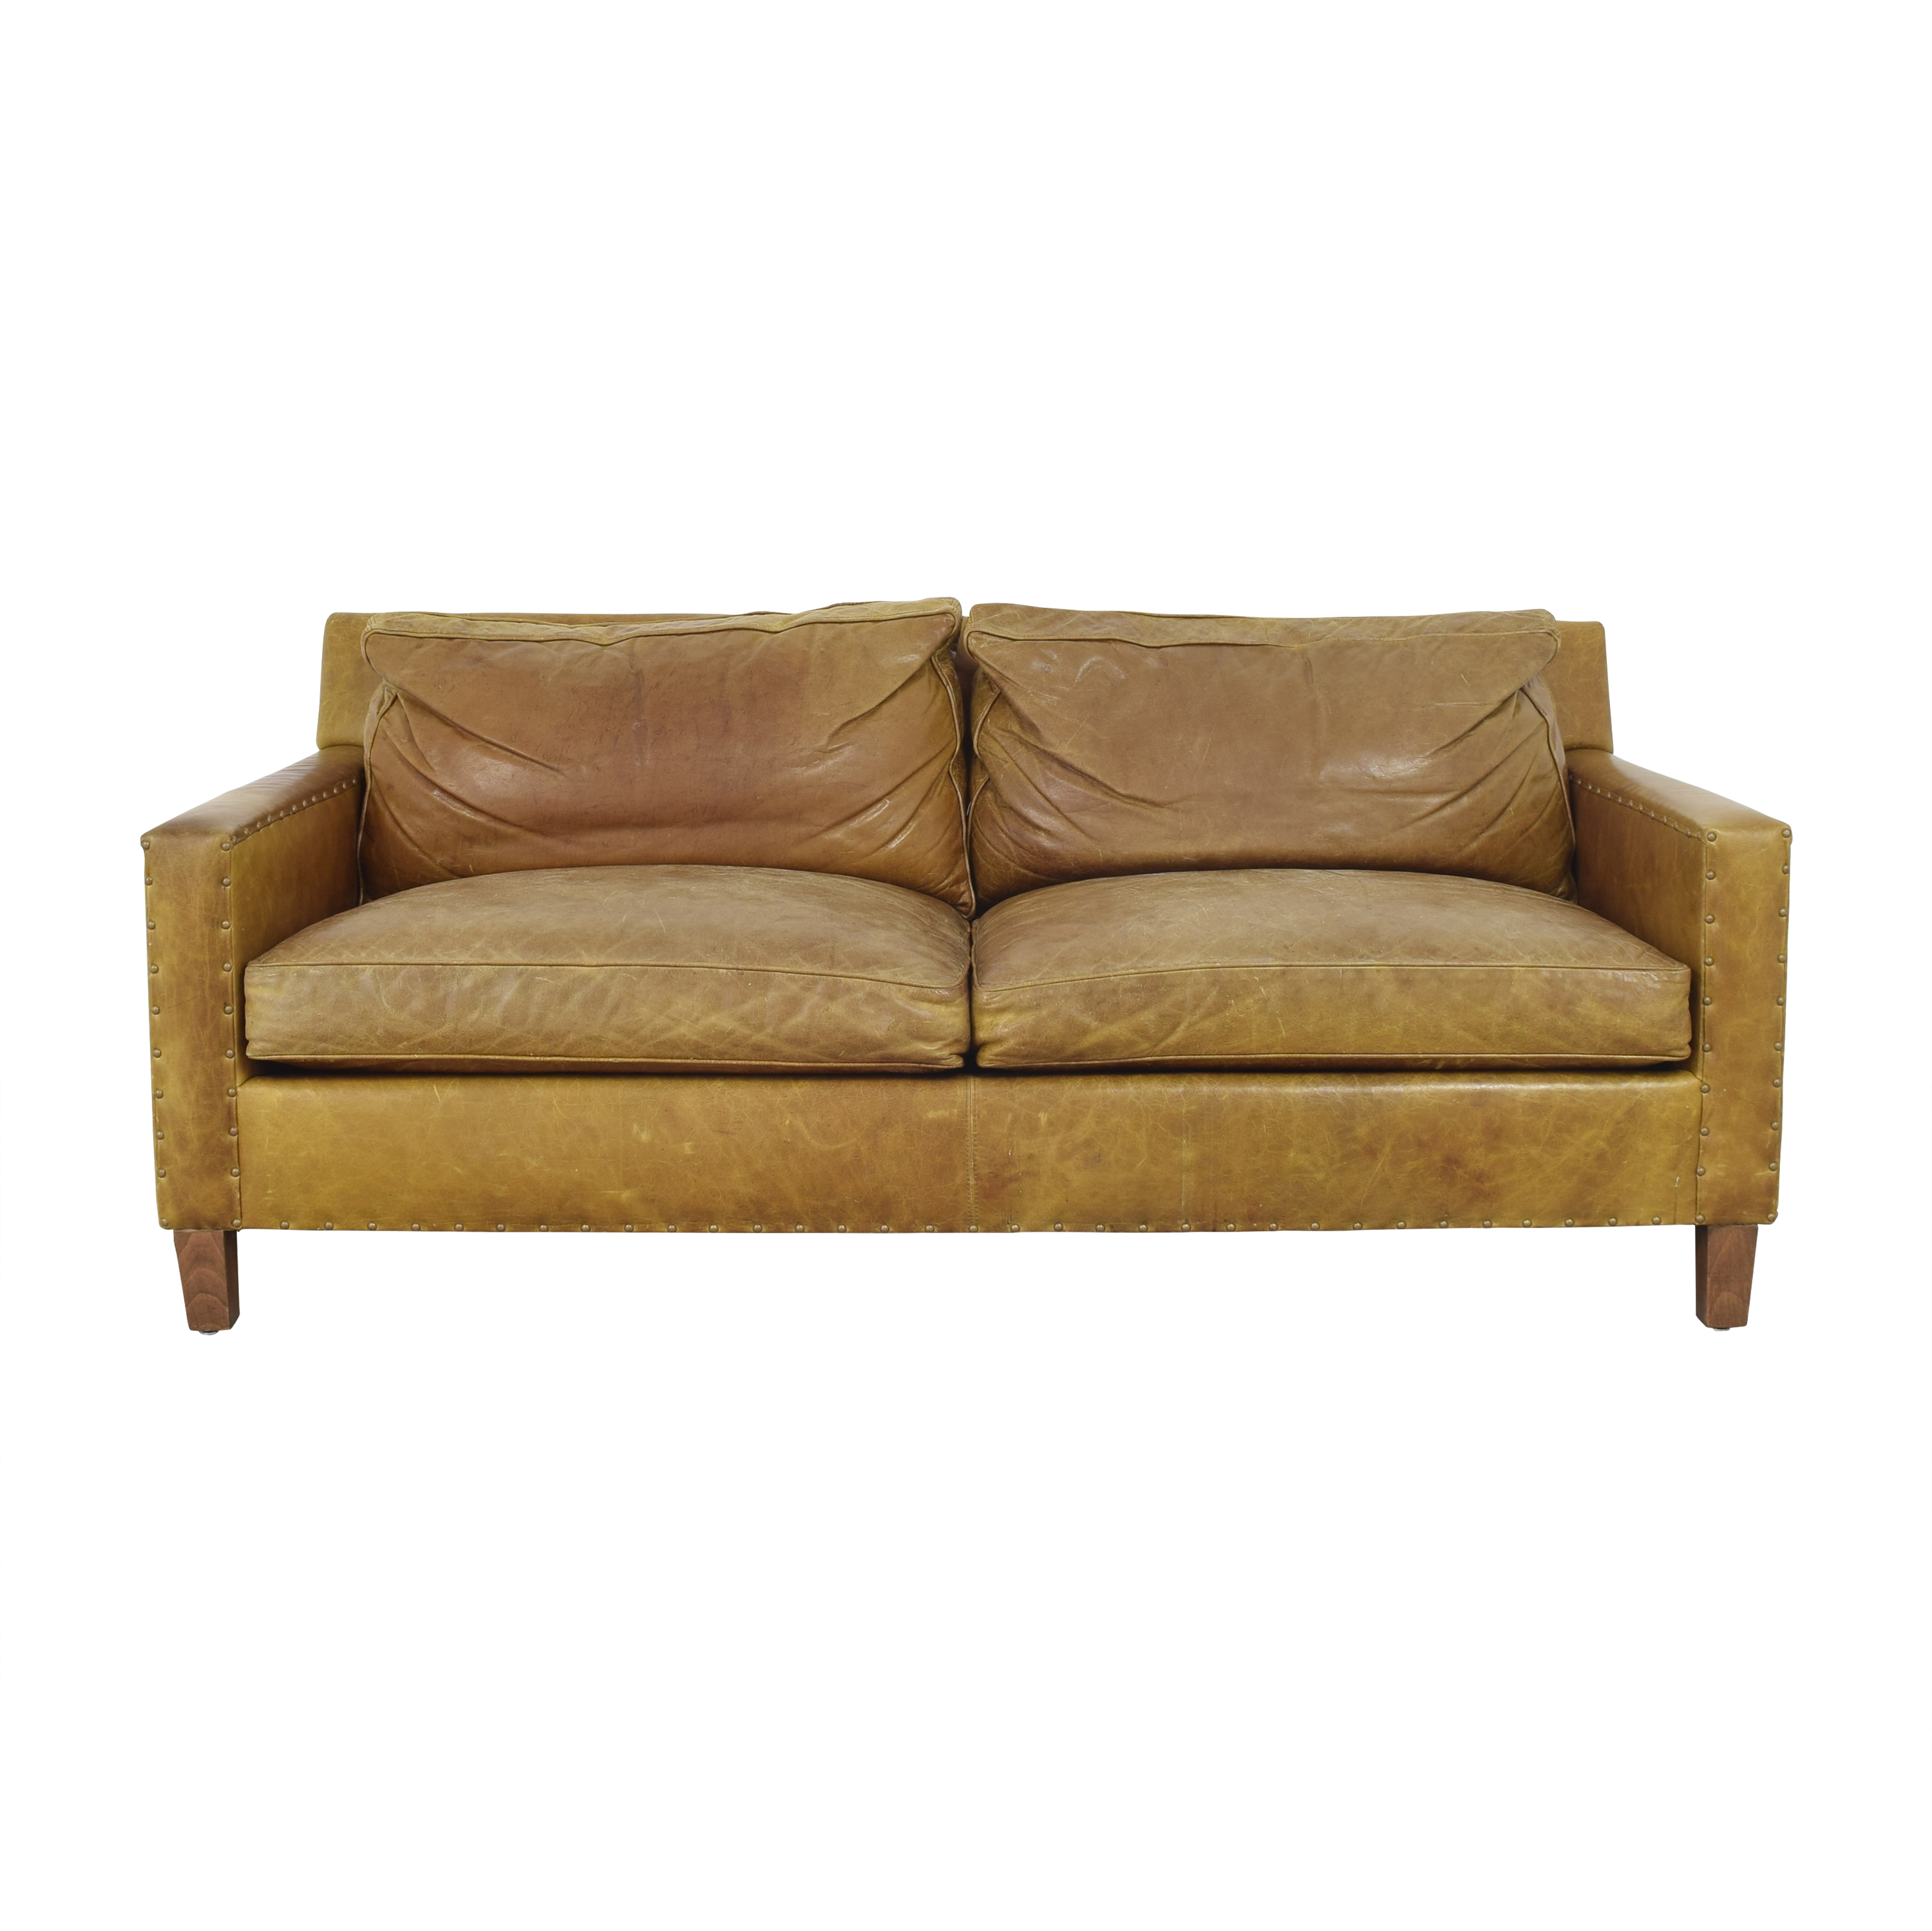 Stickley Furniture Stickley Furniture Two Cushion Modern Sofa for sale